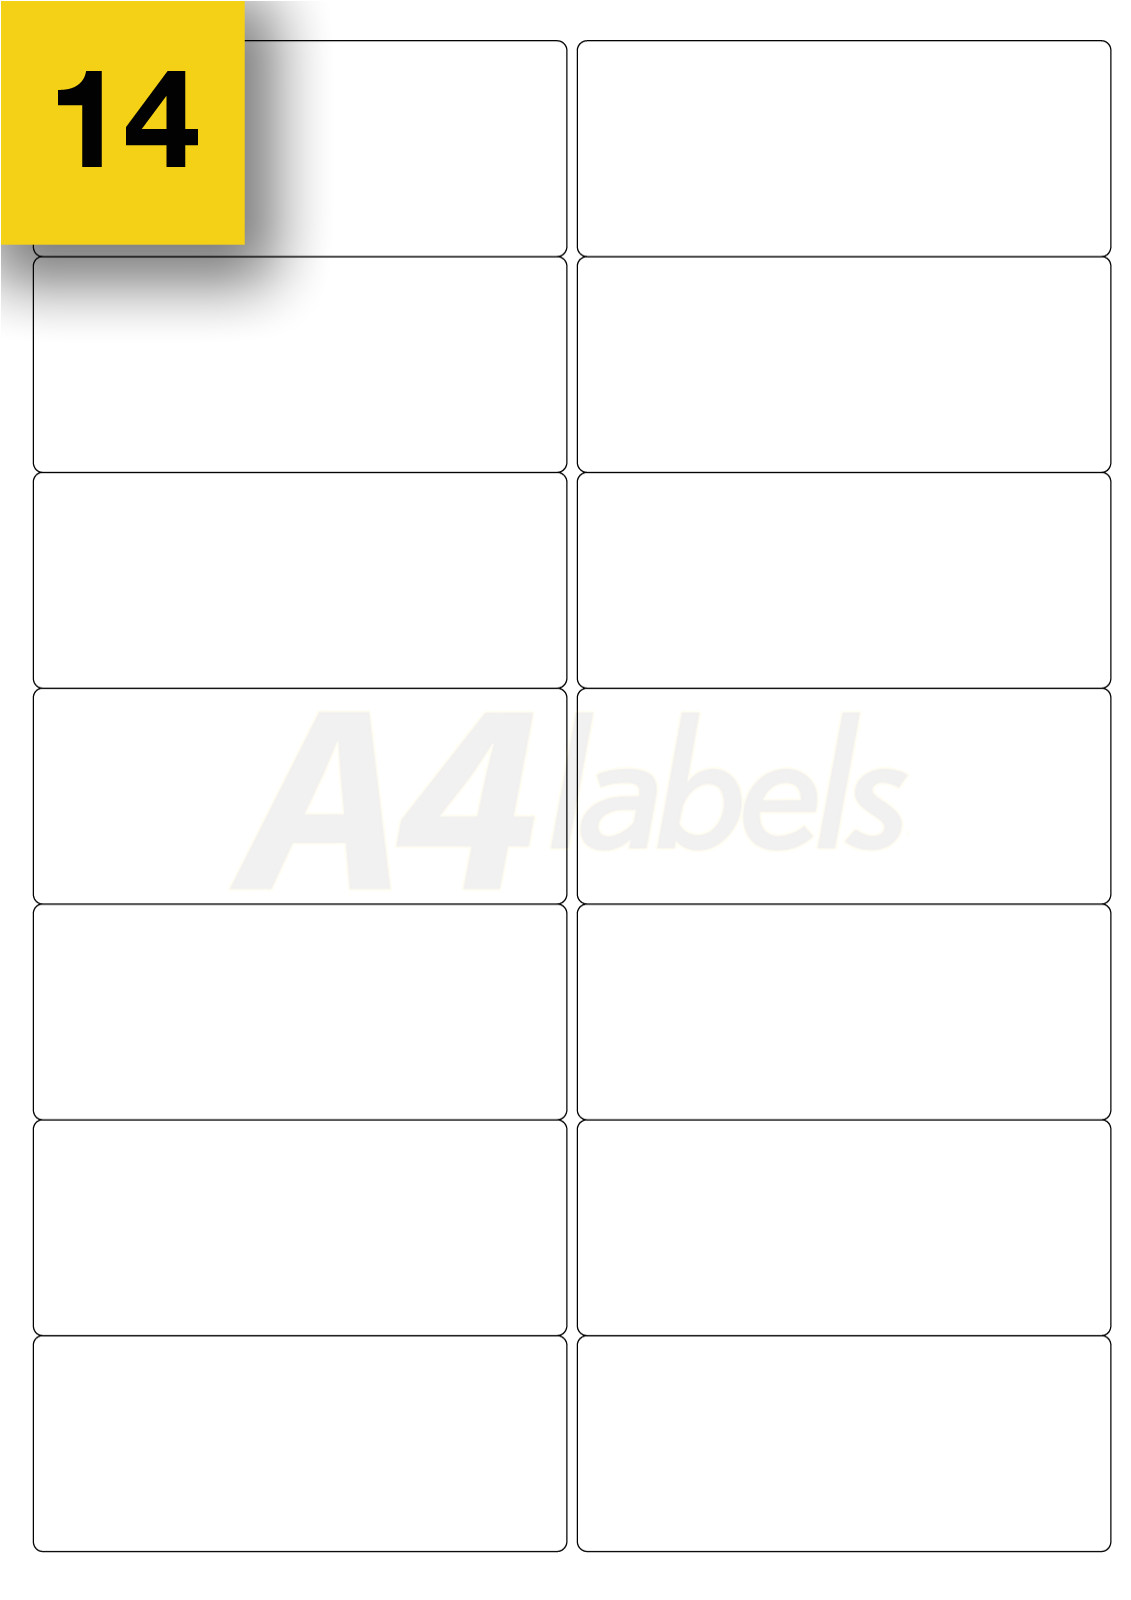 Template for Labels 14 Per Sheet Small Round 19mm Diameter A4 Laser Printer Labels 20